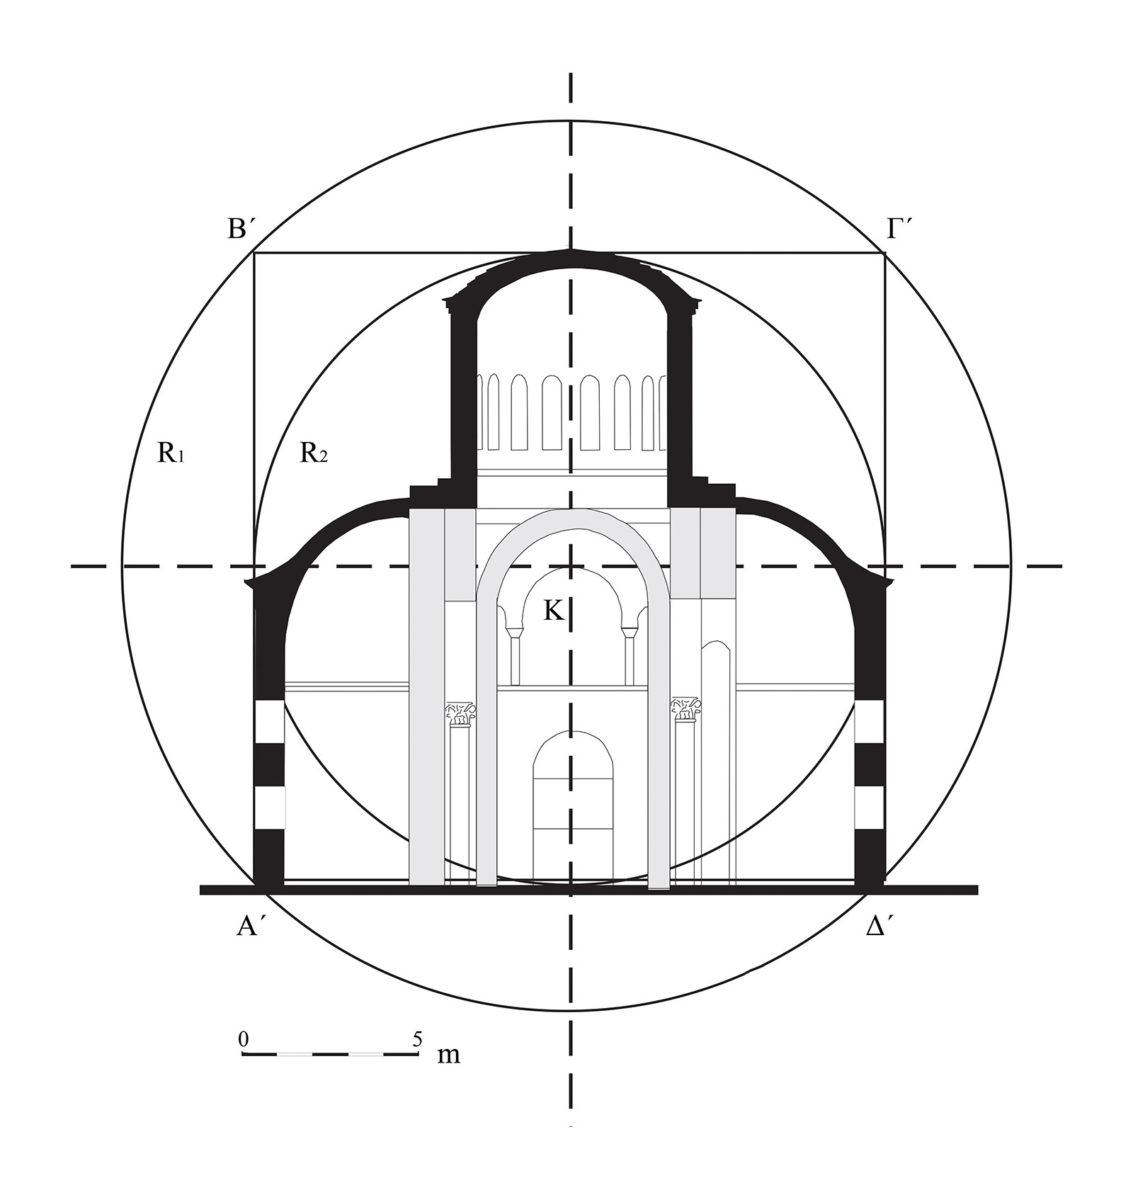 Fig. 7. Cross-sectional view. Geometric planning.